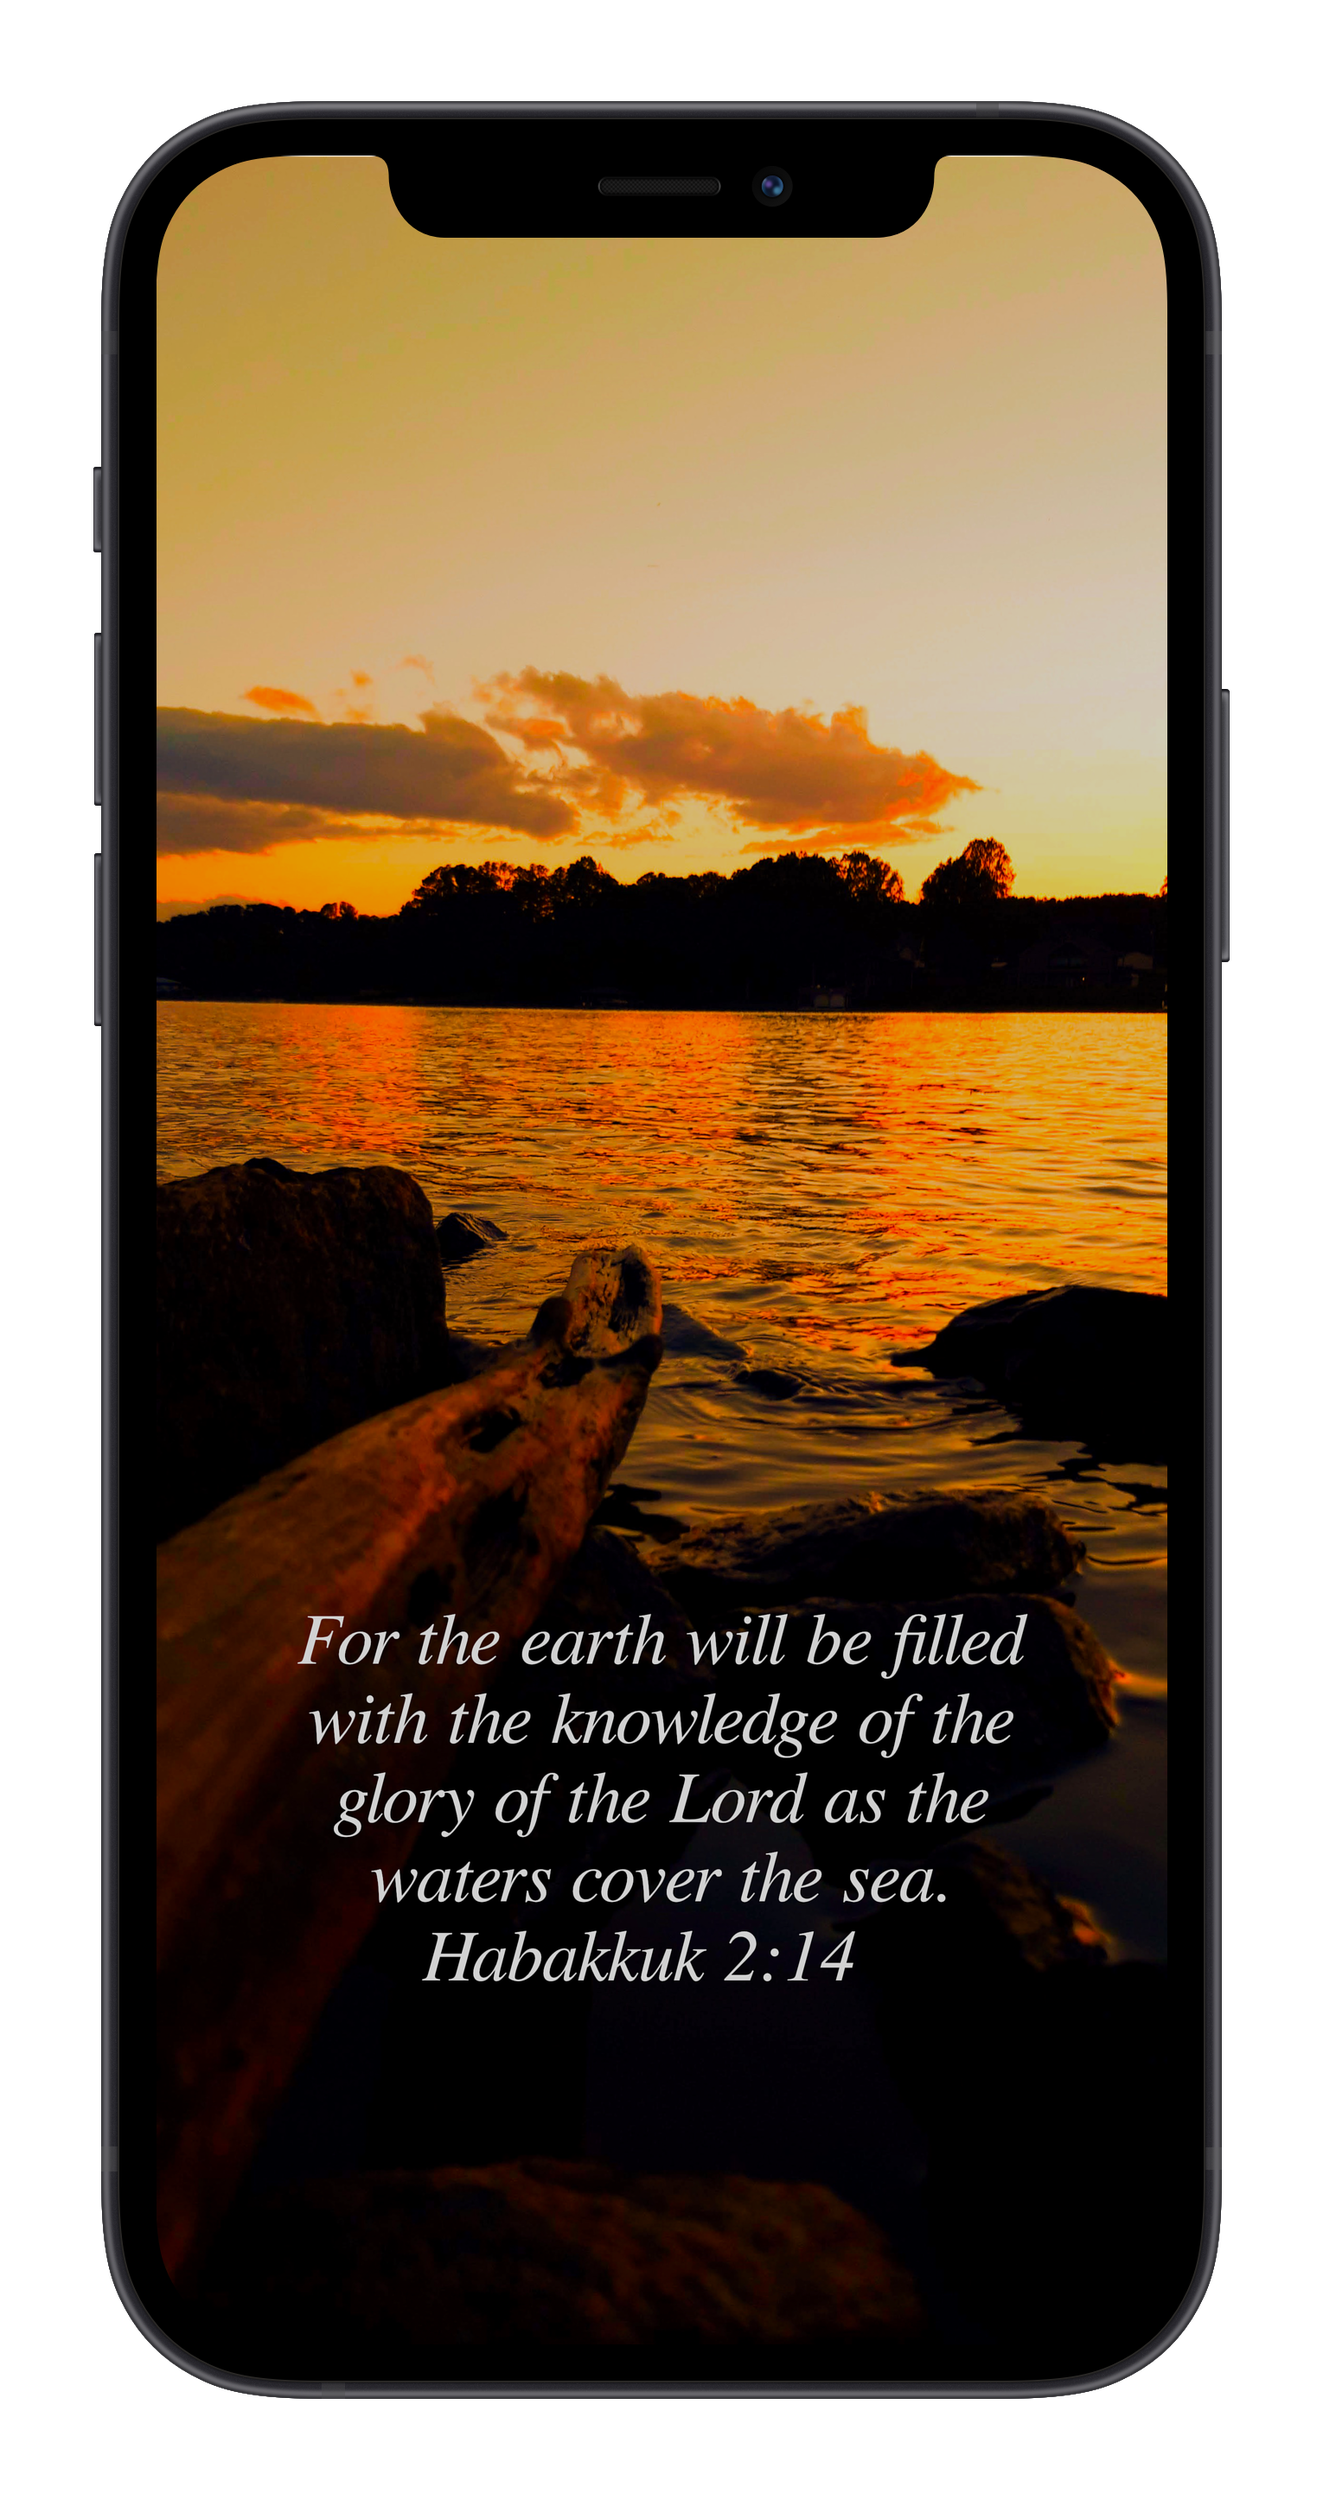 Habakkuk 2:14 by Biblical Wallpapers   Weekly Biblical Encouragement, Cas Medlin, WBE, Biblical wallpapers, Biblical wallpaper, Bible Verse, Bible Verse images, Bible verse wallpaper, Free Biblical Wallpapers, Free Christian Wallpapers, Christian mobile wallpapers,   bible,    cover the sea,    filled,    knowledge,   bible verse,   Biblical,   Christian,   church,   cross,   glory